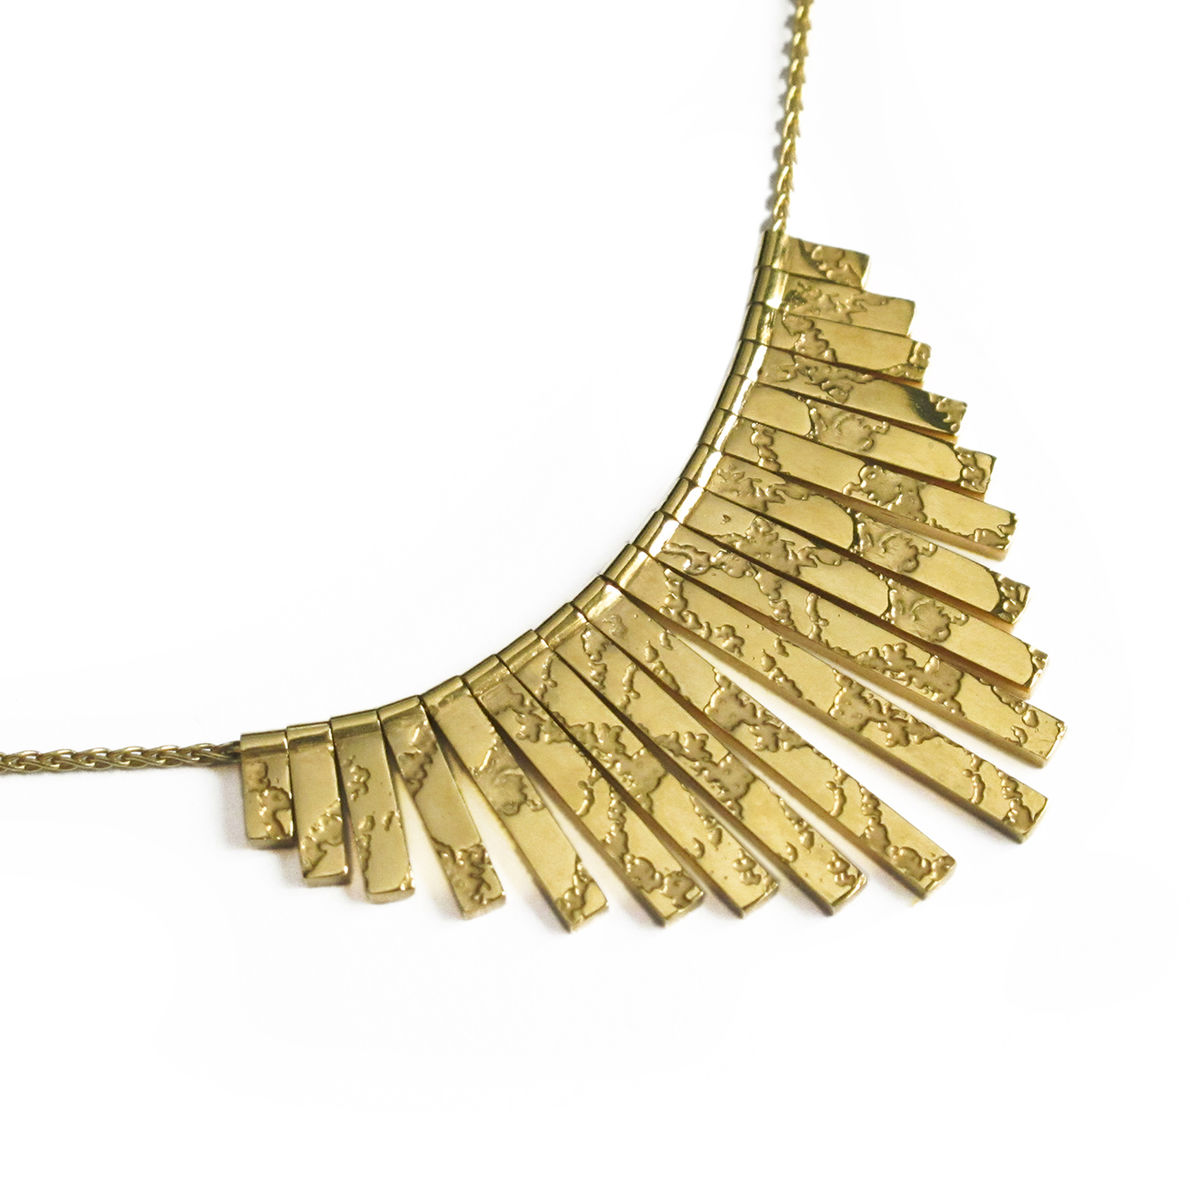 SKIN textured fringed necklace - gold plated sterling silver - product image